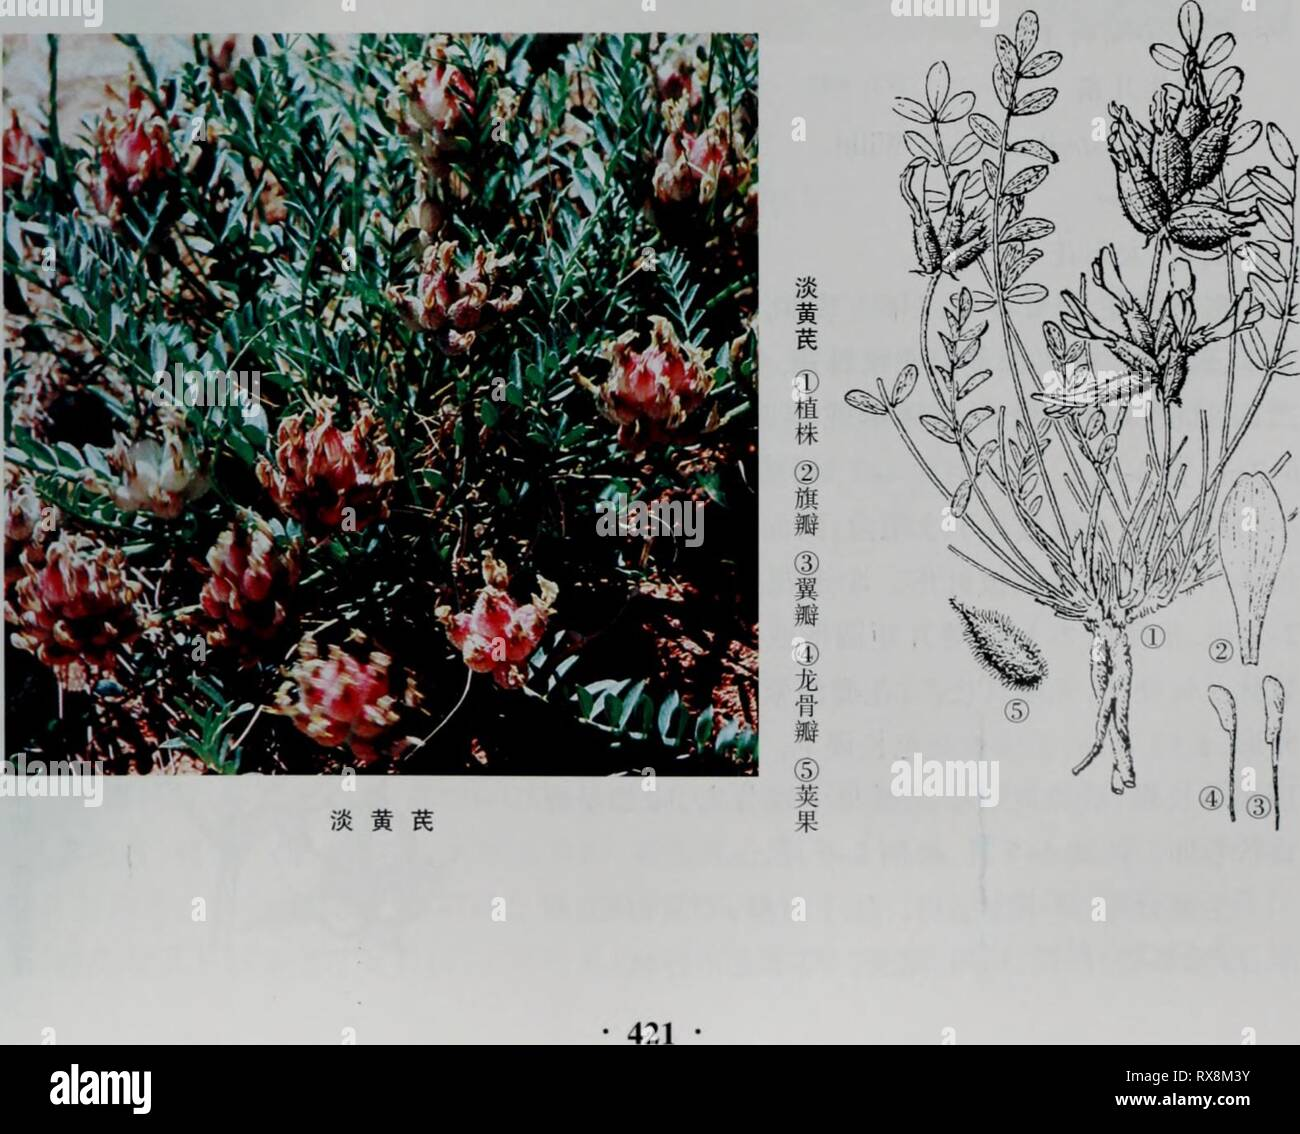 17 9 2007 Stock Photos & 17 9 2007 Stock Images - Alamy